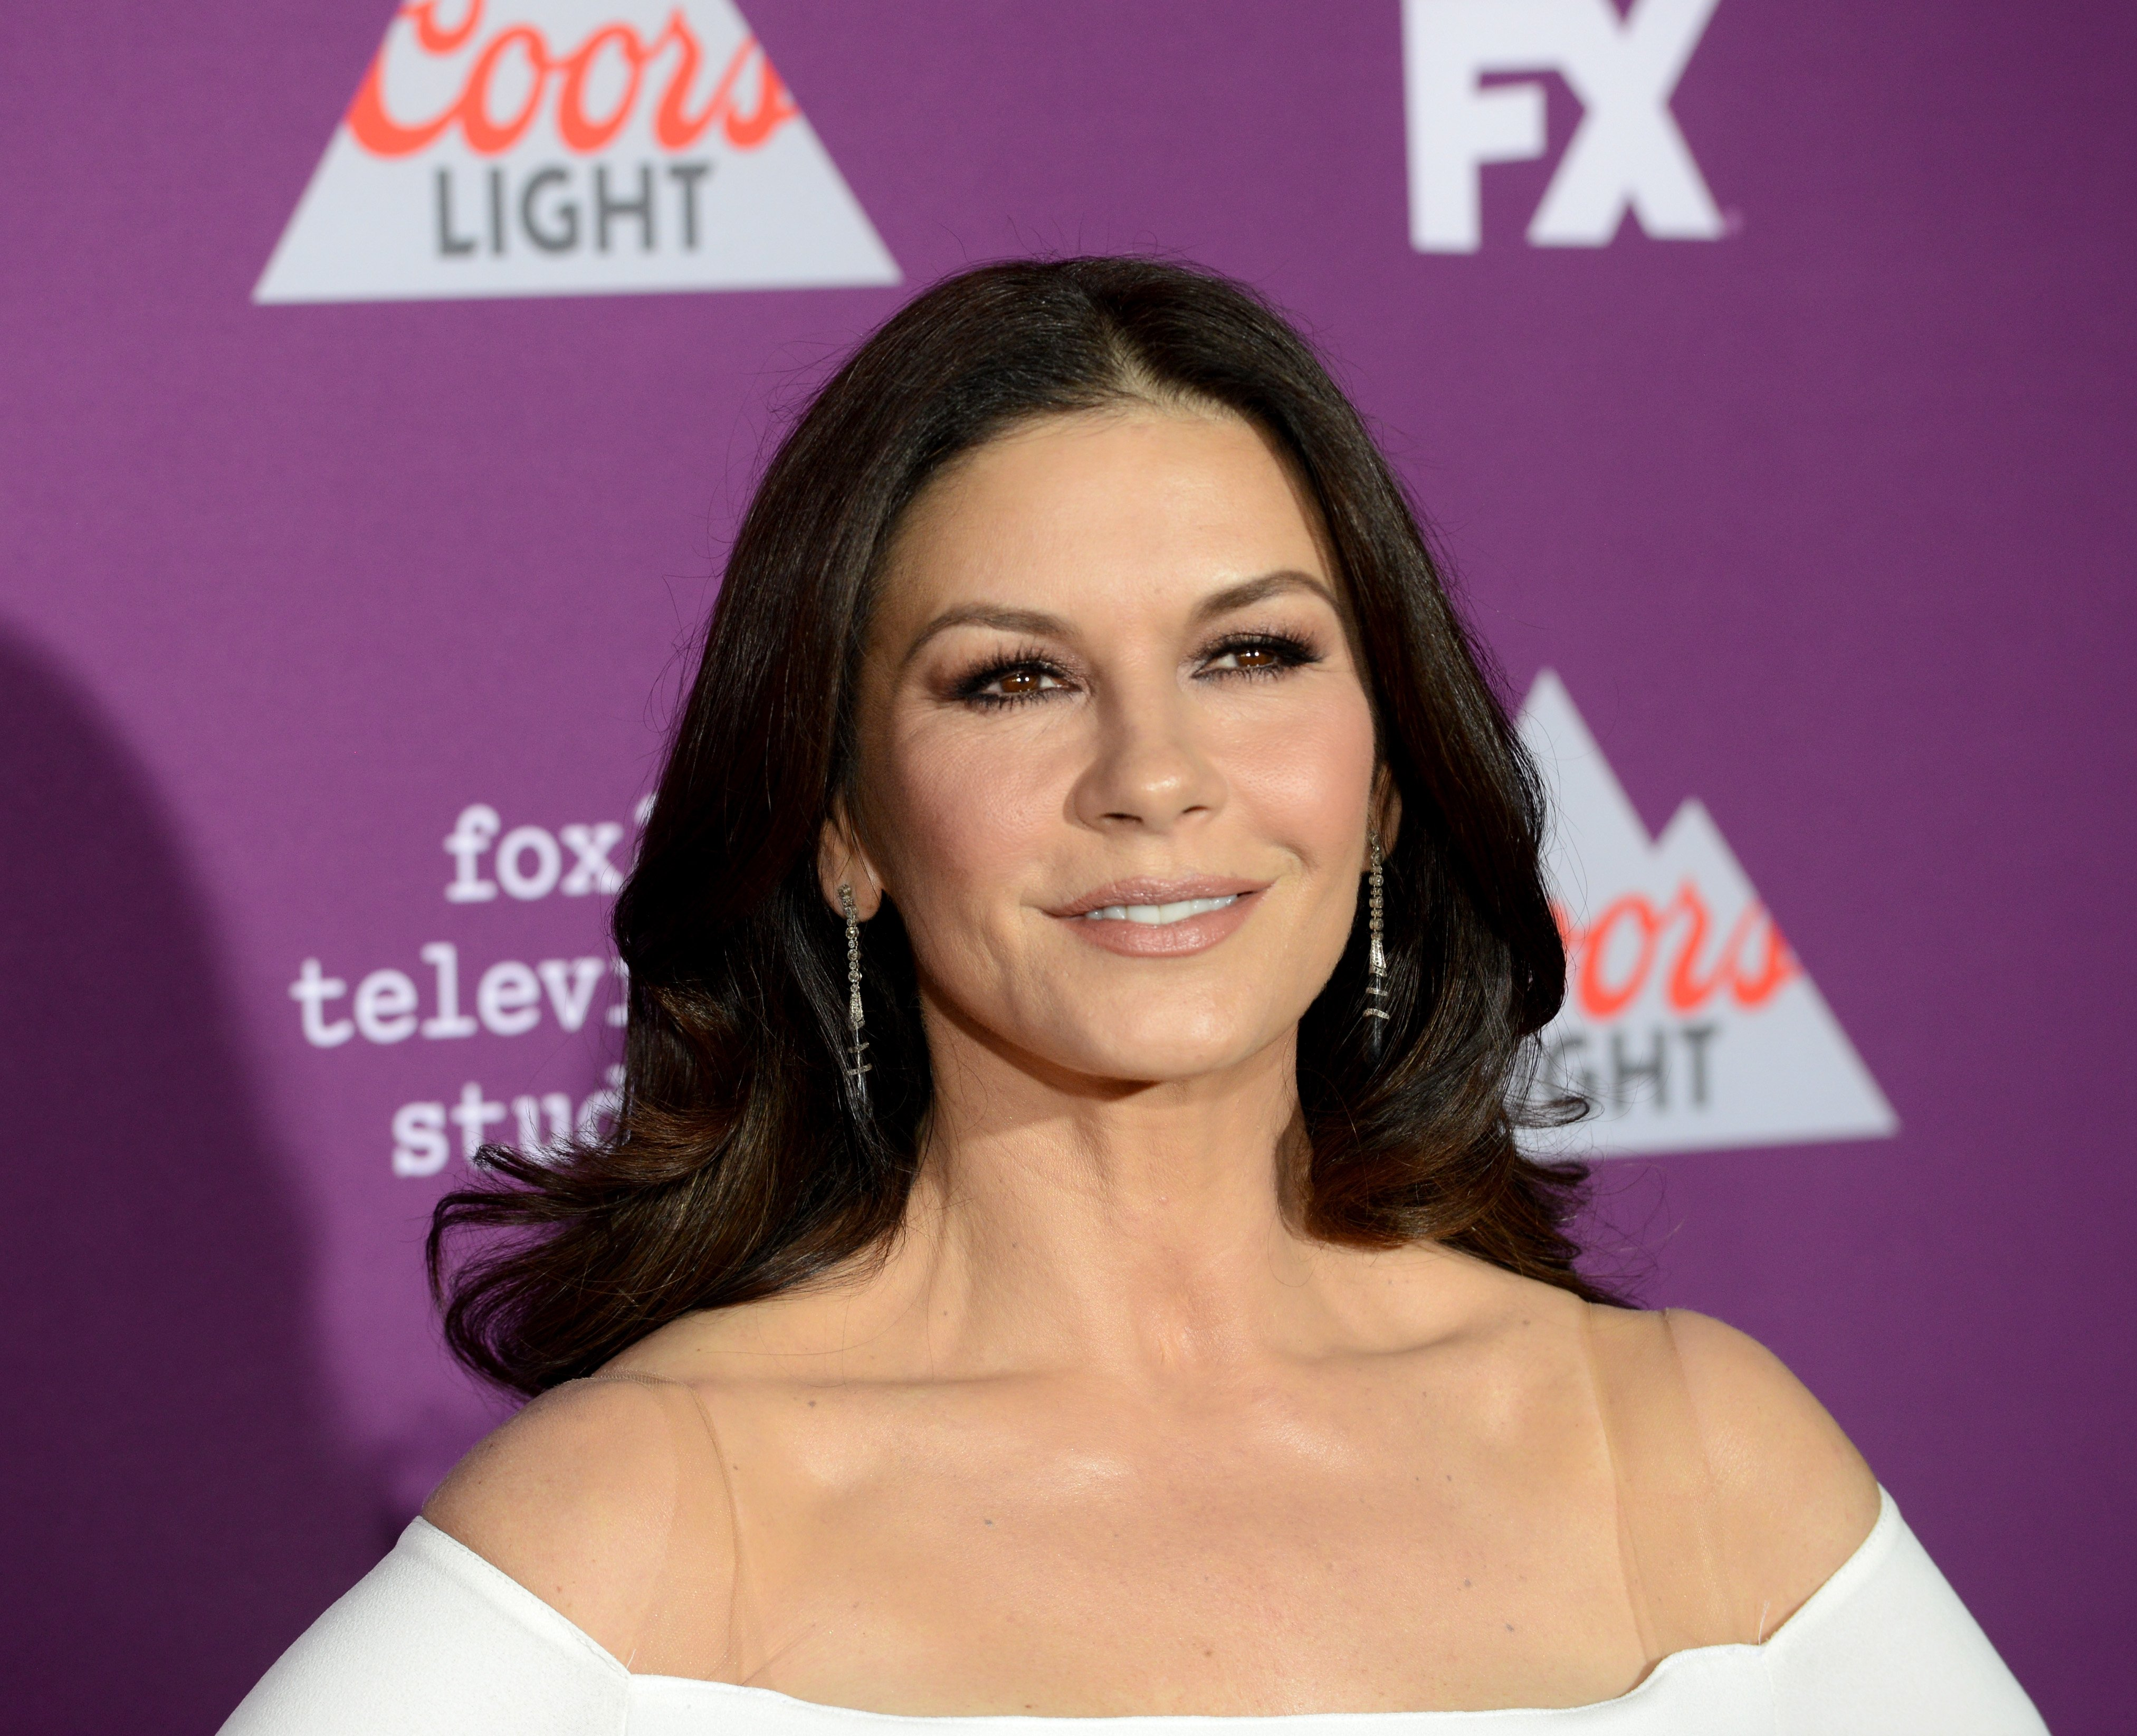 Catherine Zeta-Jones attend a 2017 premiere event in Hollywood, California. | Photo: Getty Images